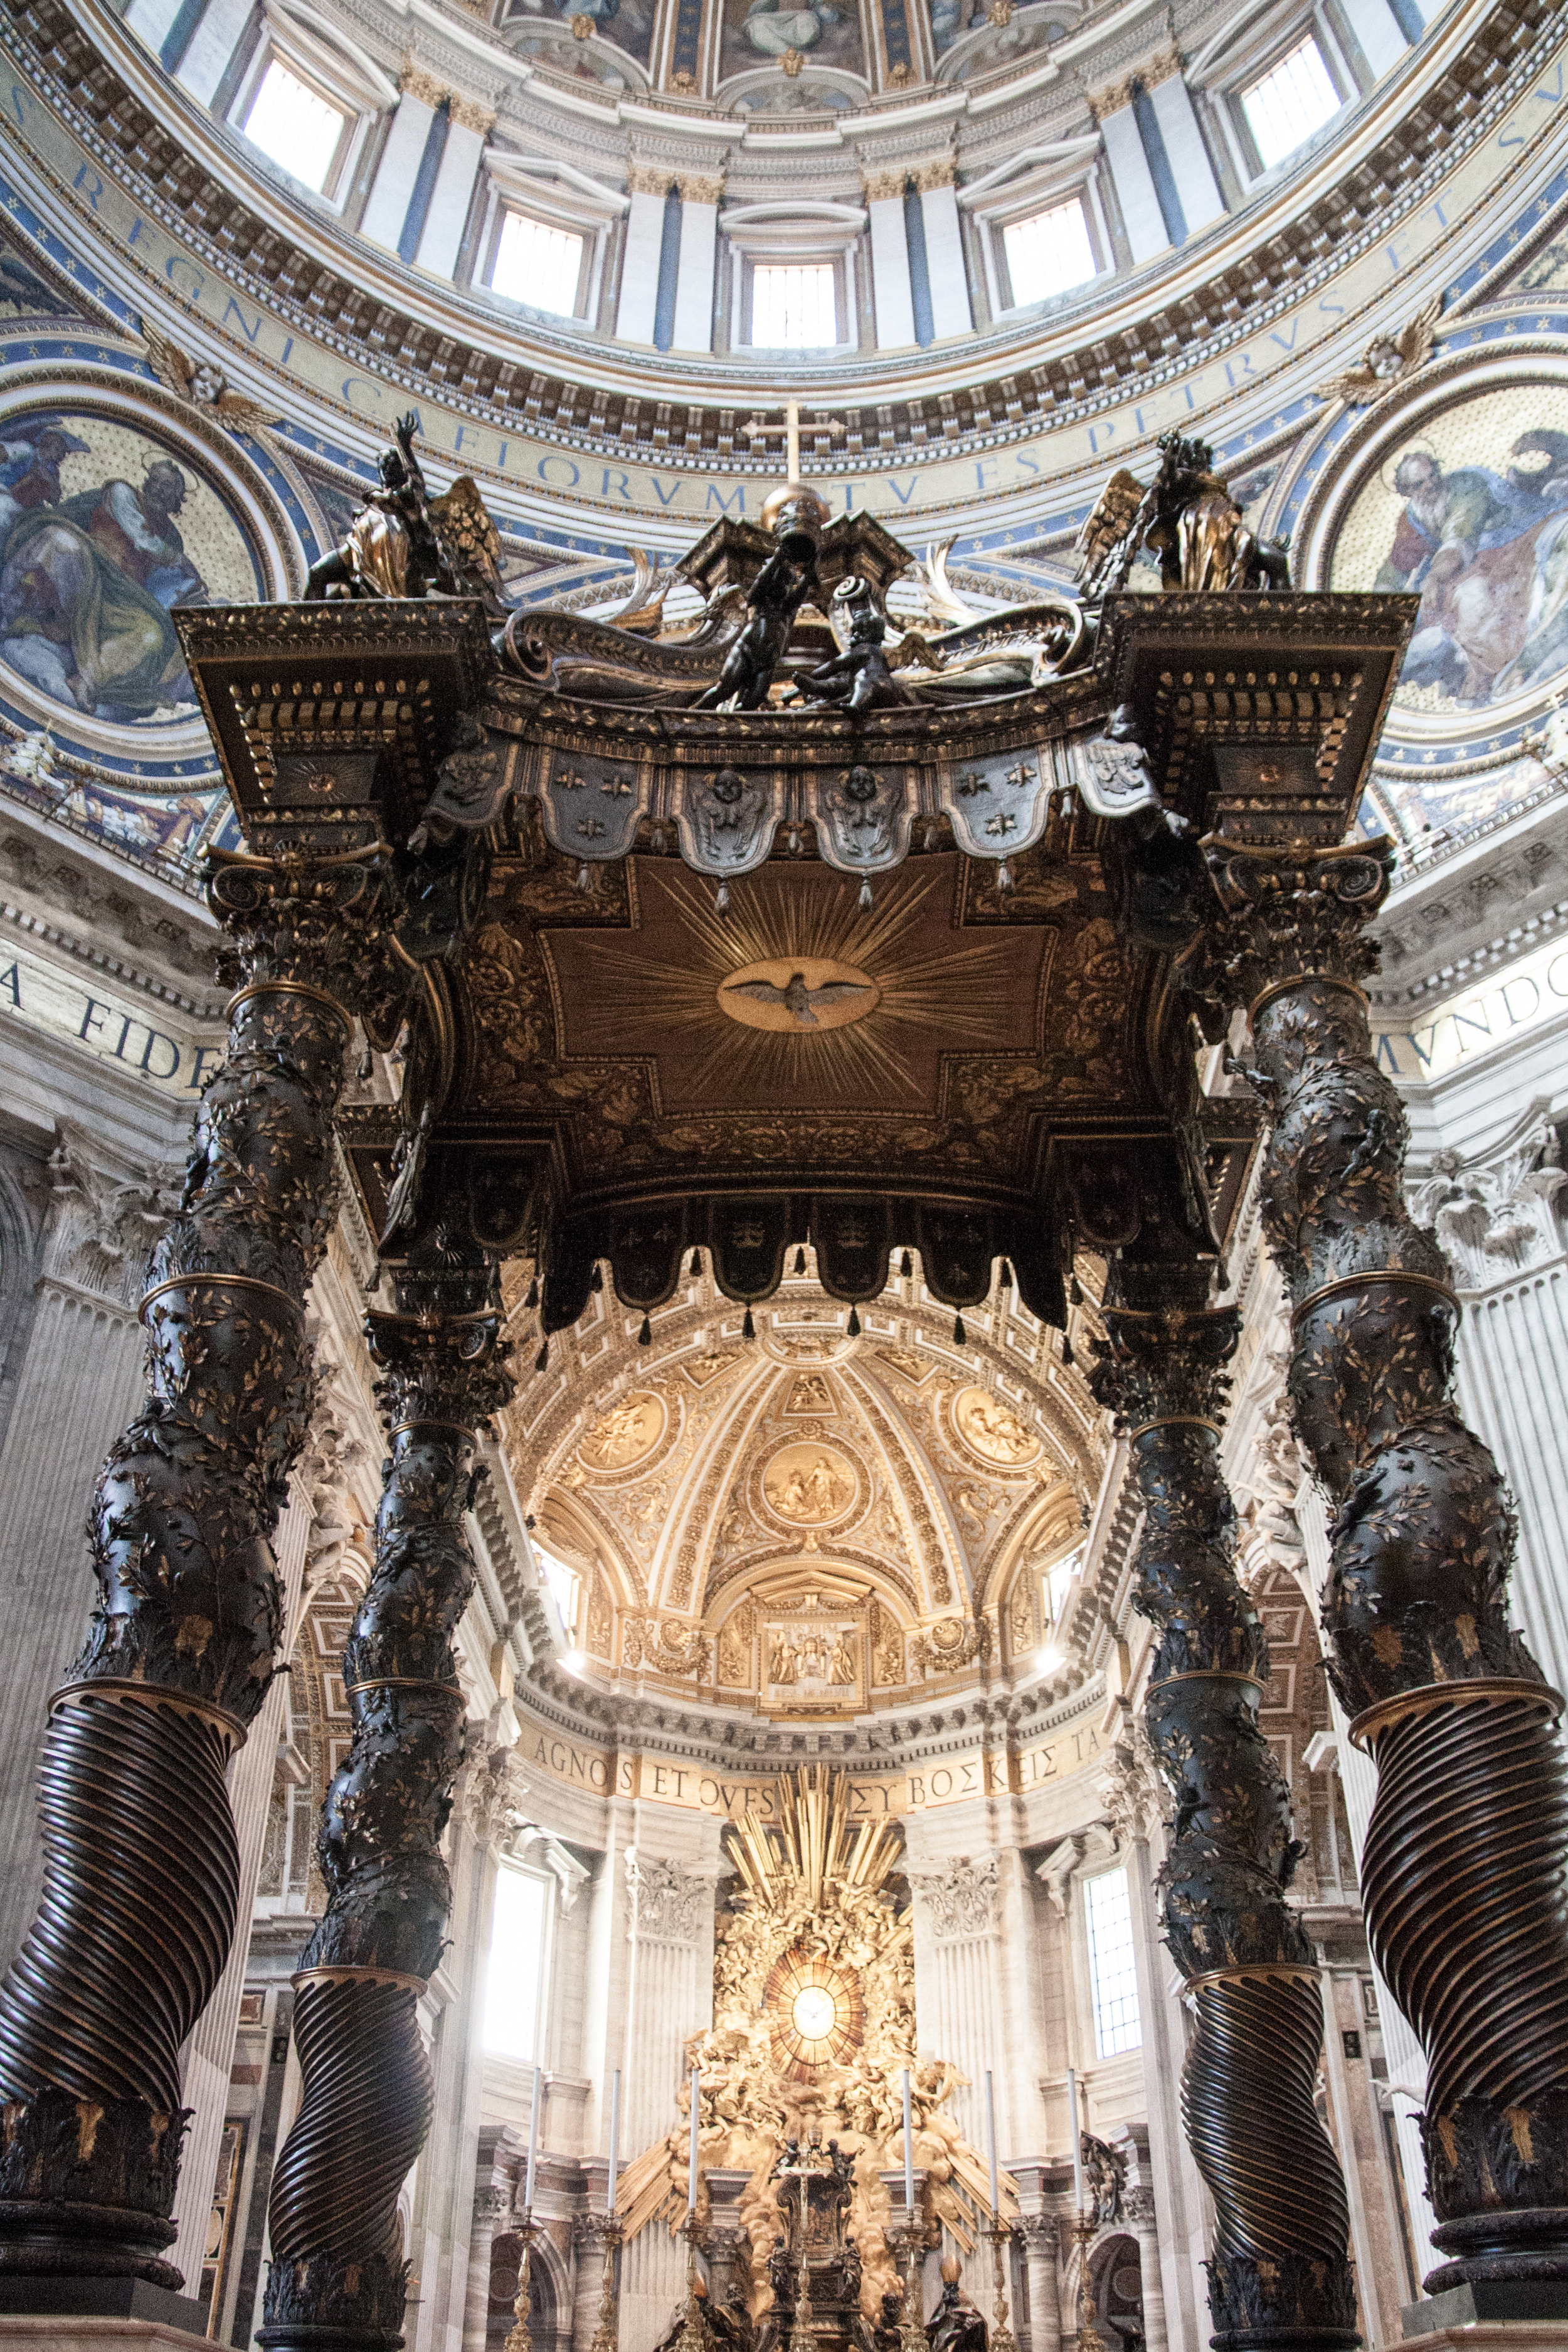 St. Peter's Canopy and Monument of the Cathedra of St. Peter